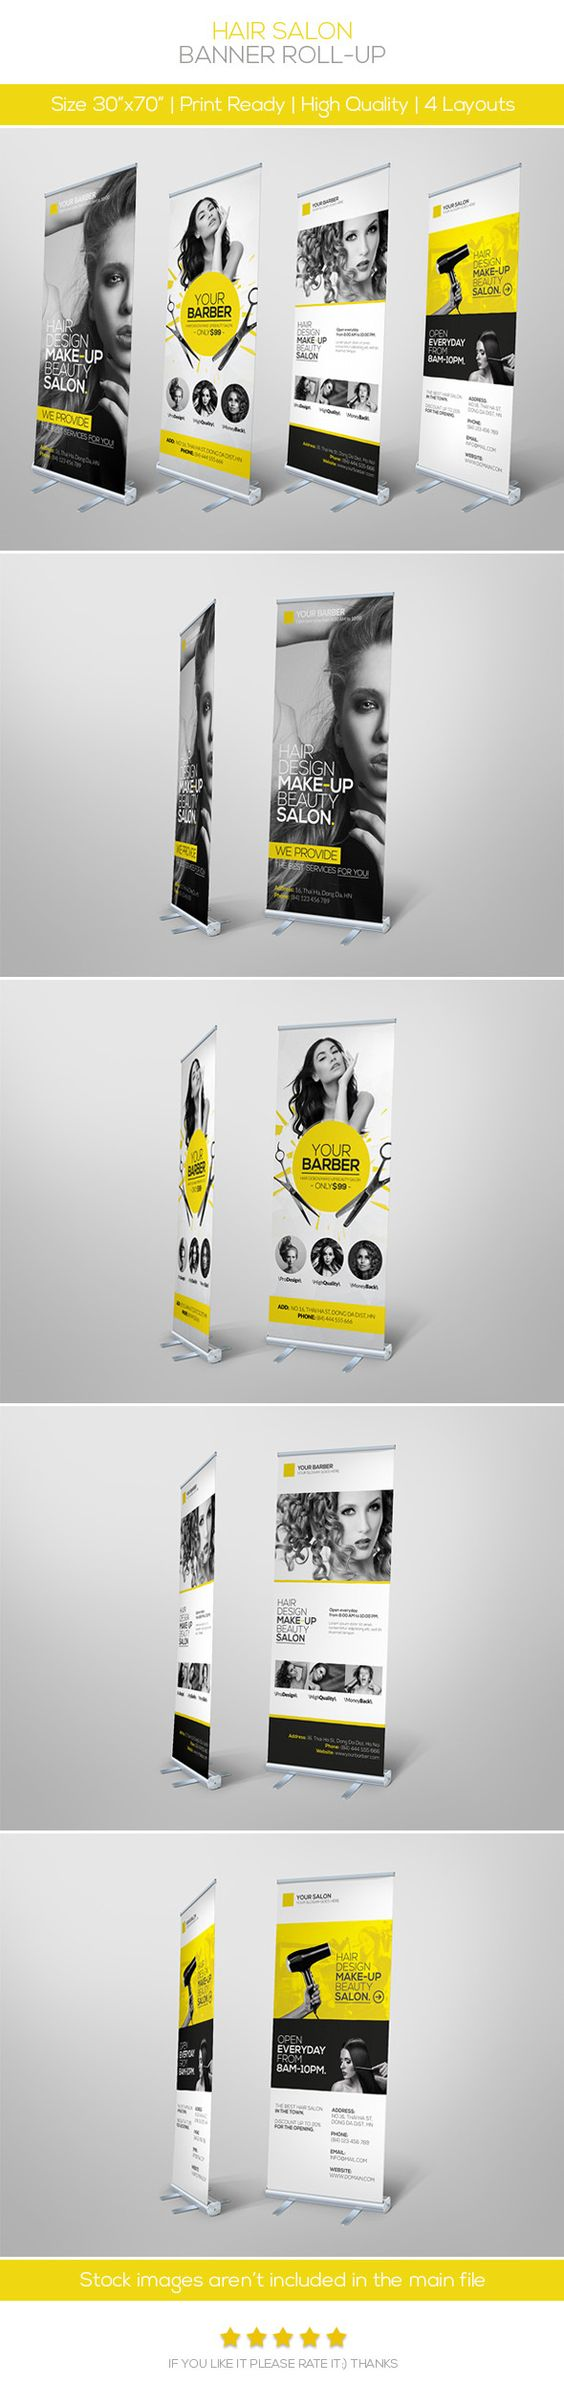 Design for roll up banner - Best 25 Roll Up Design Ideas On Pinterest Tradeshow Banner Design Rollup Display And Rollup Banner